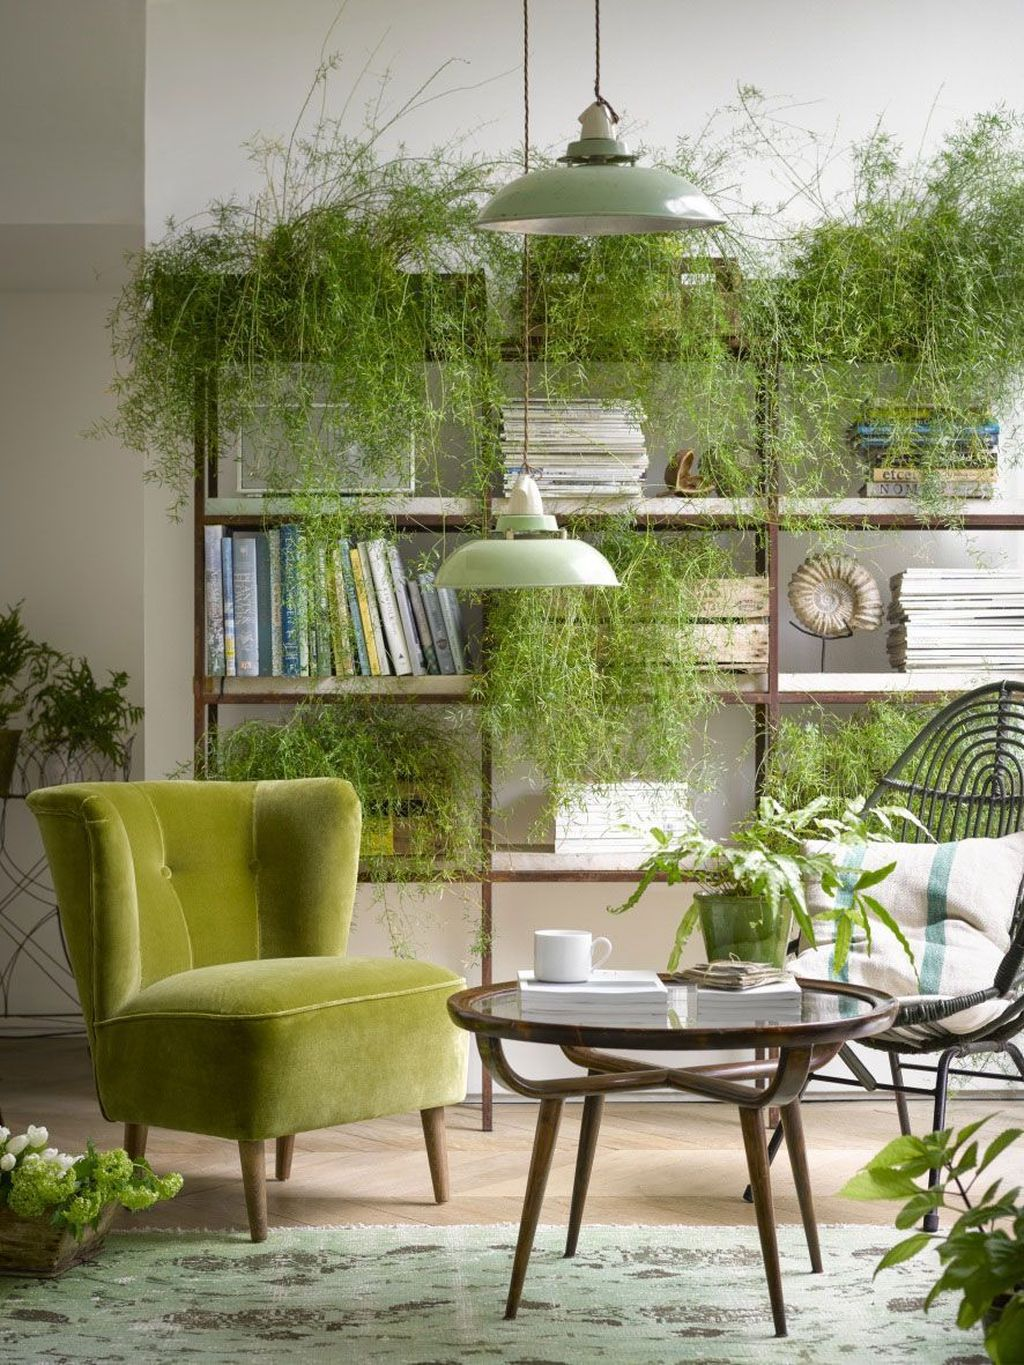 Best Summer Interior Design Ideas To Beautify Your Home 36